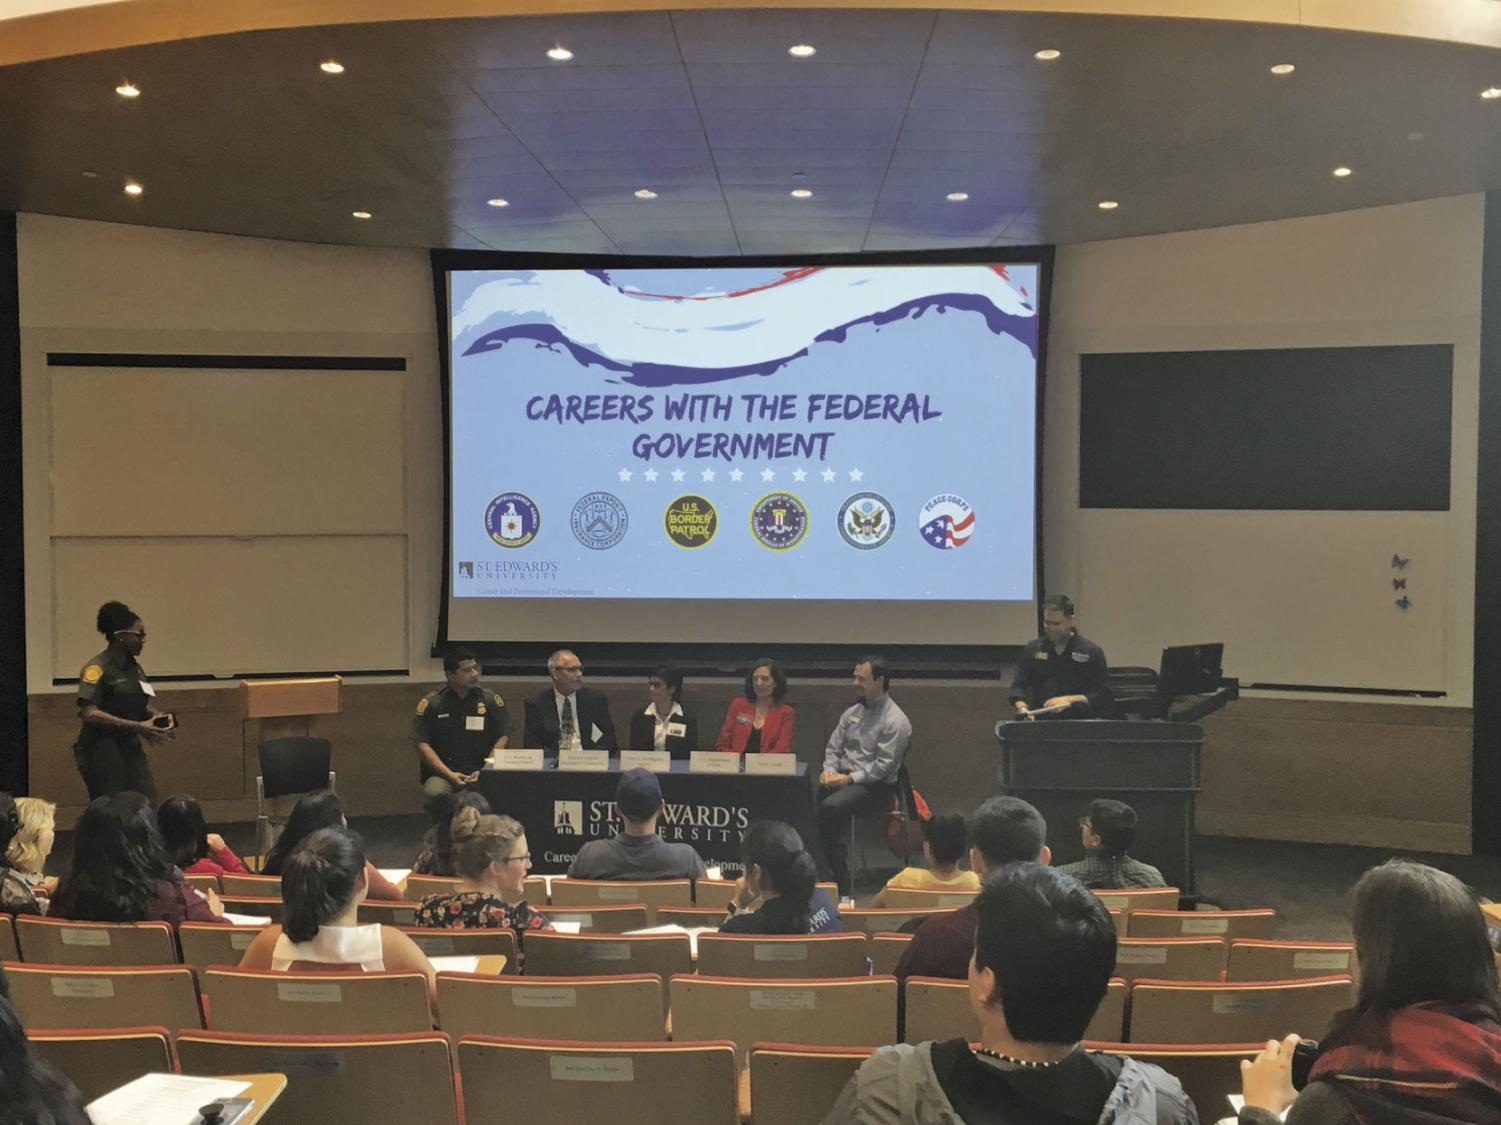 Panelists included agents from the CIA and the Peace Corps.